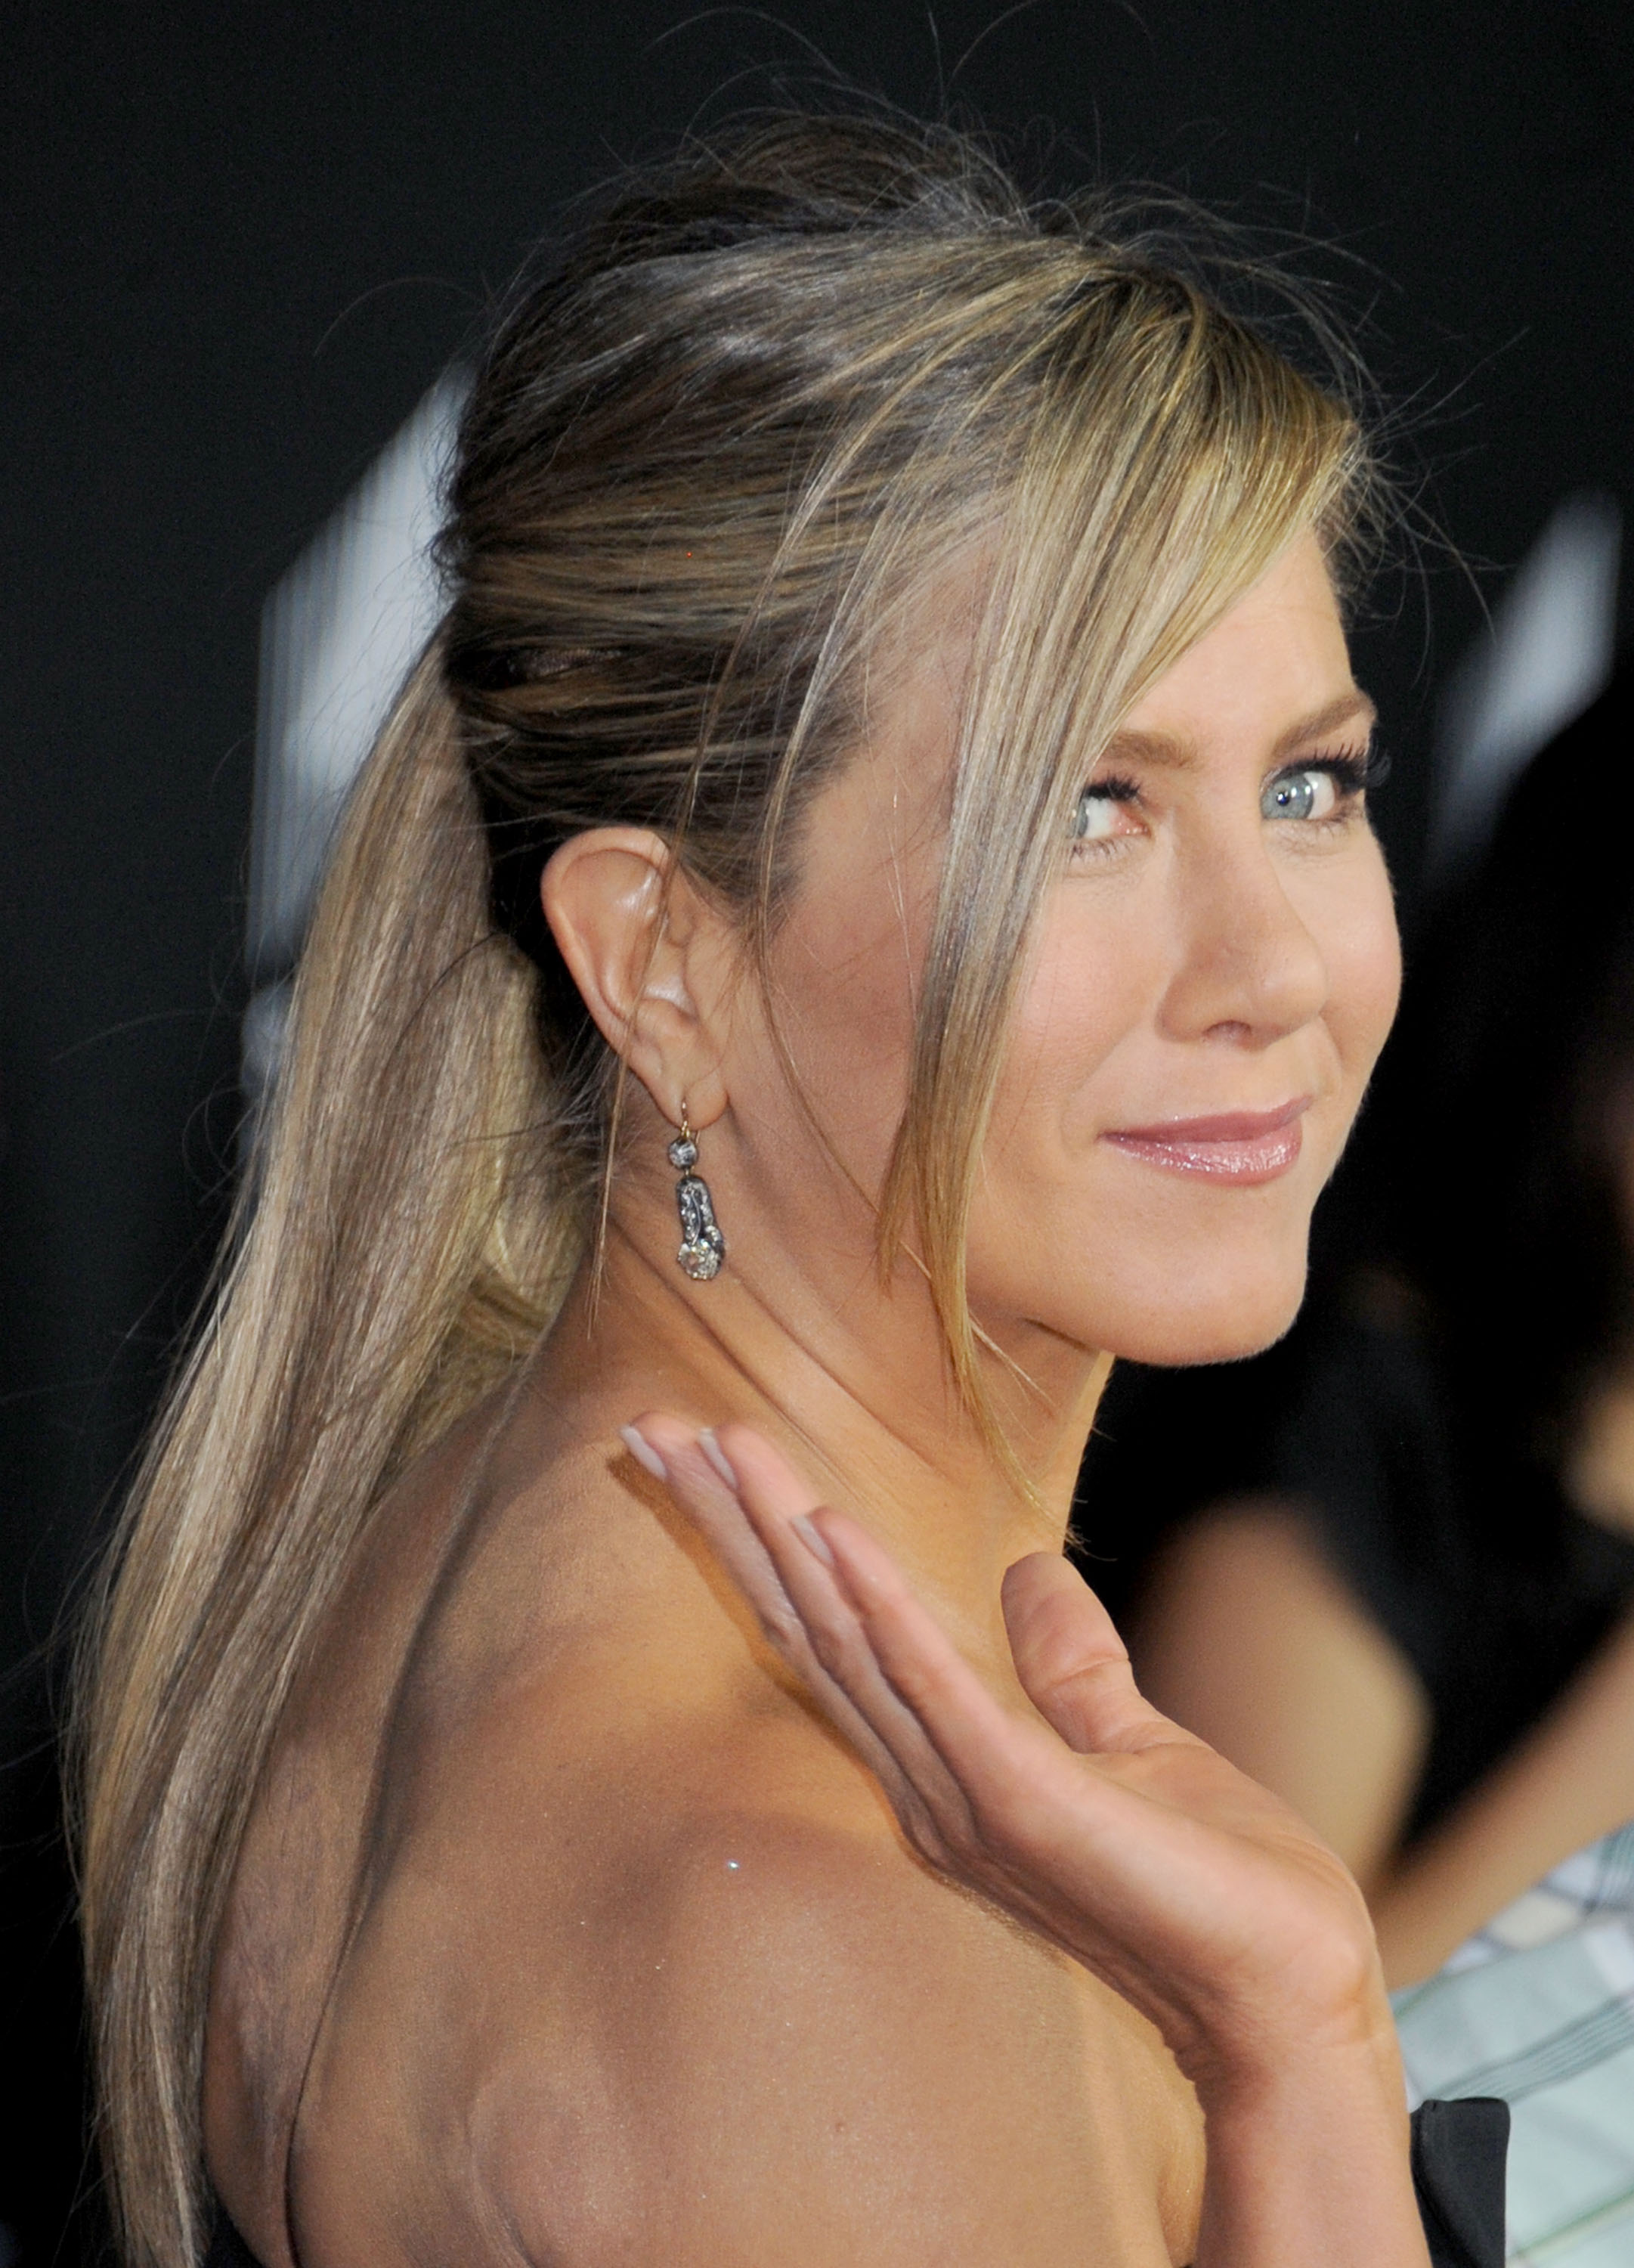 Jennifer Aniston's cupping marks